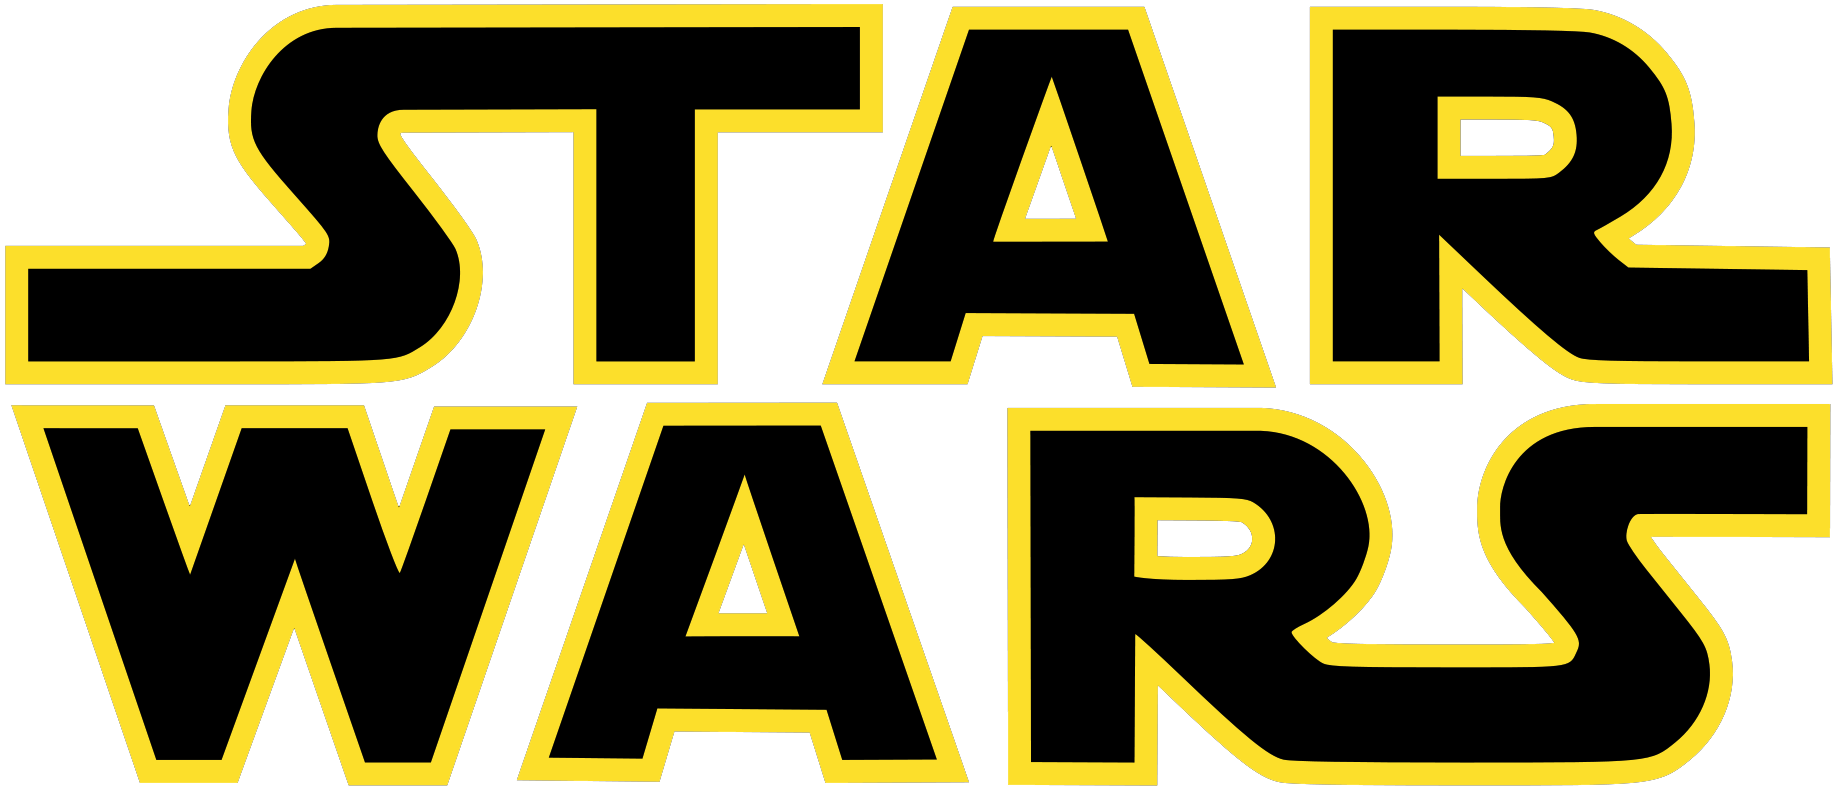 A red star wars blast png. Wish shopping made fun picture freeuse